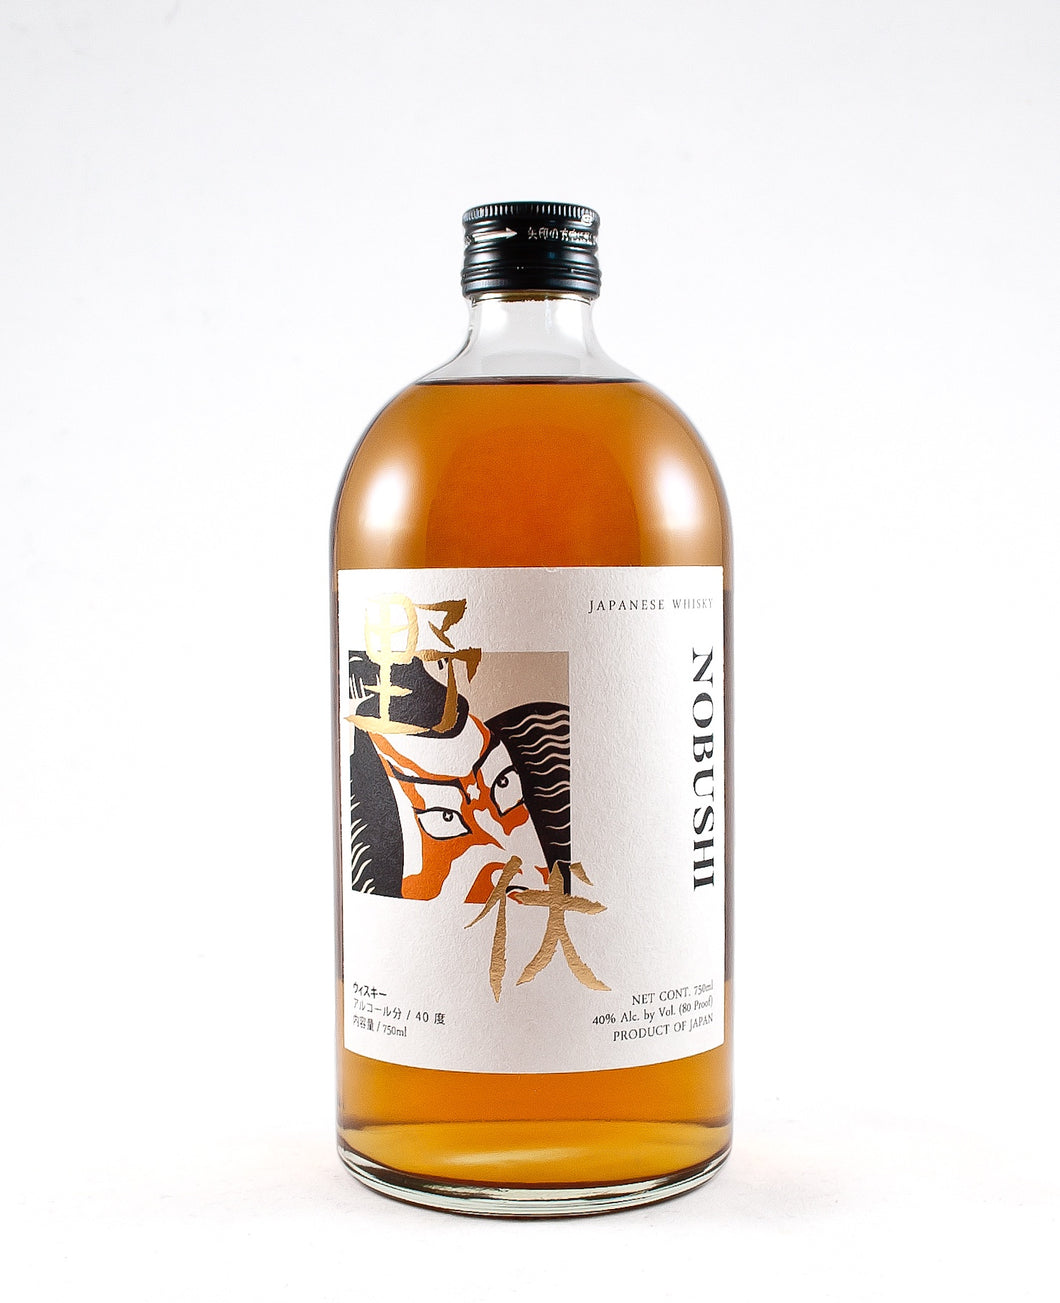 Nobushi Blended Japanese Whisky (Japan)